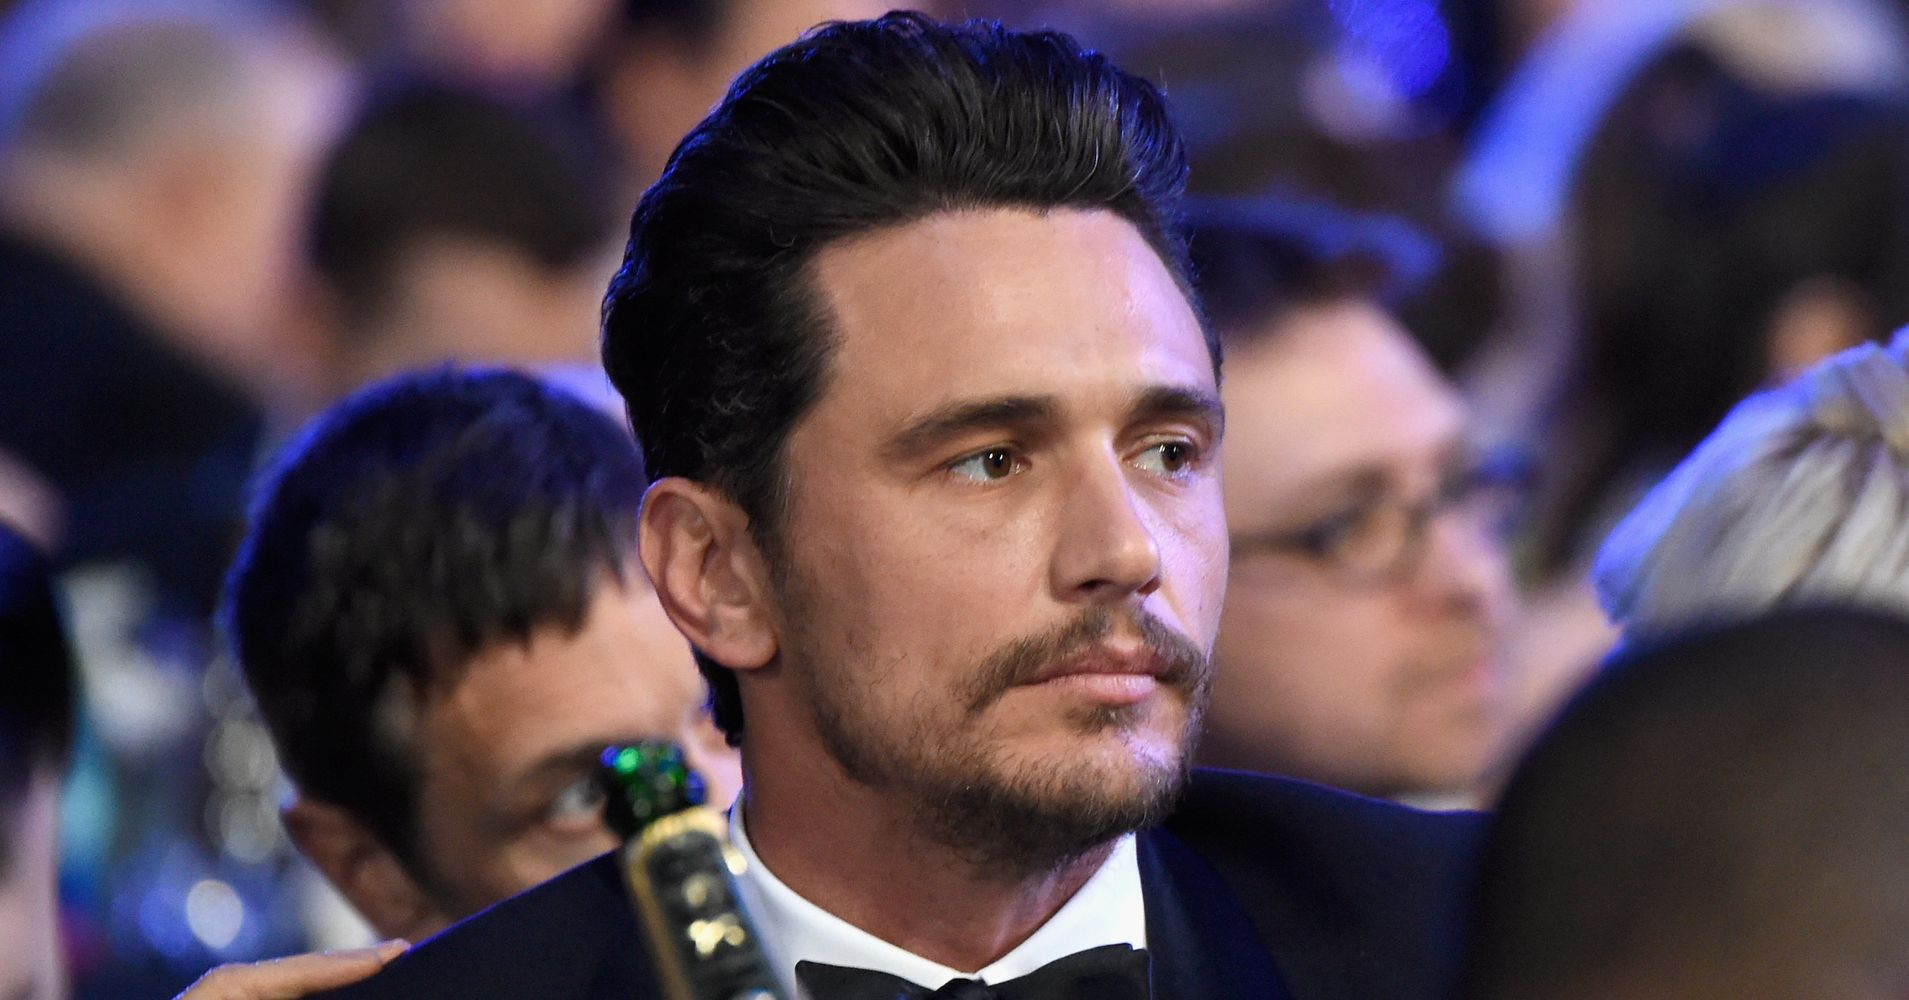 James Franco Accusers Ask: 'Please Just Apologize'